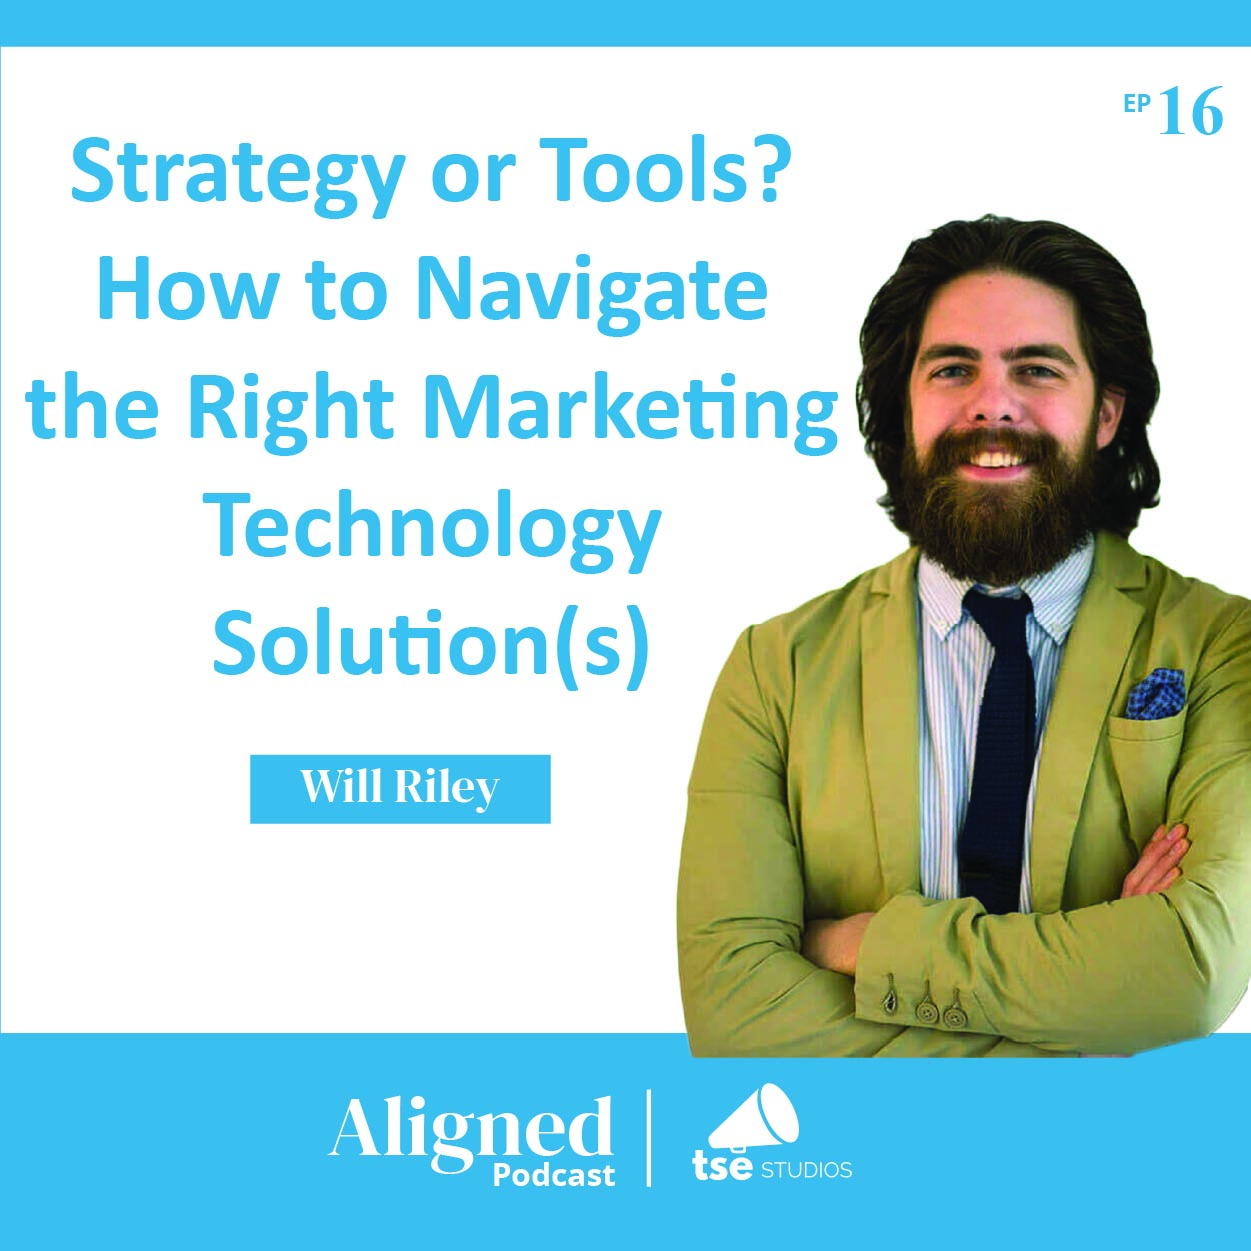 Strategy or Tools? How to Navigate the Right Marketing Technology Solution(s)